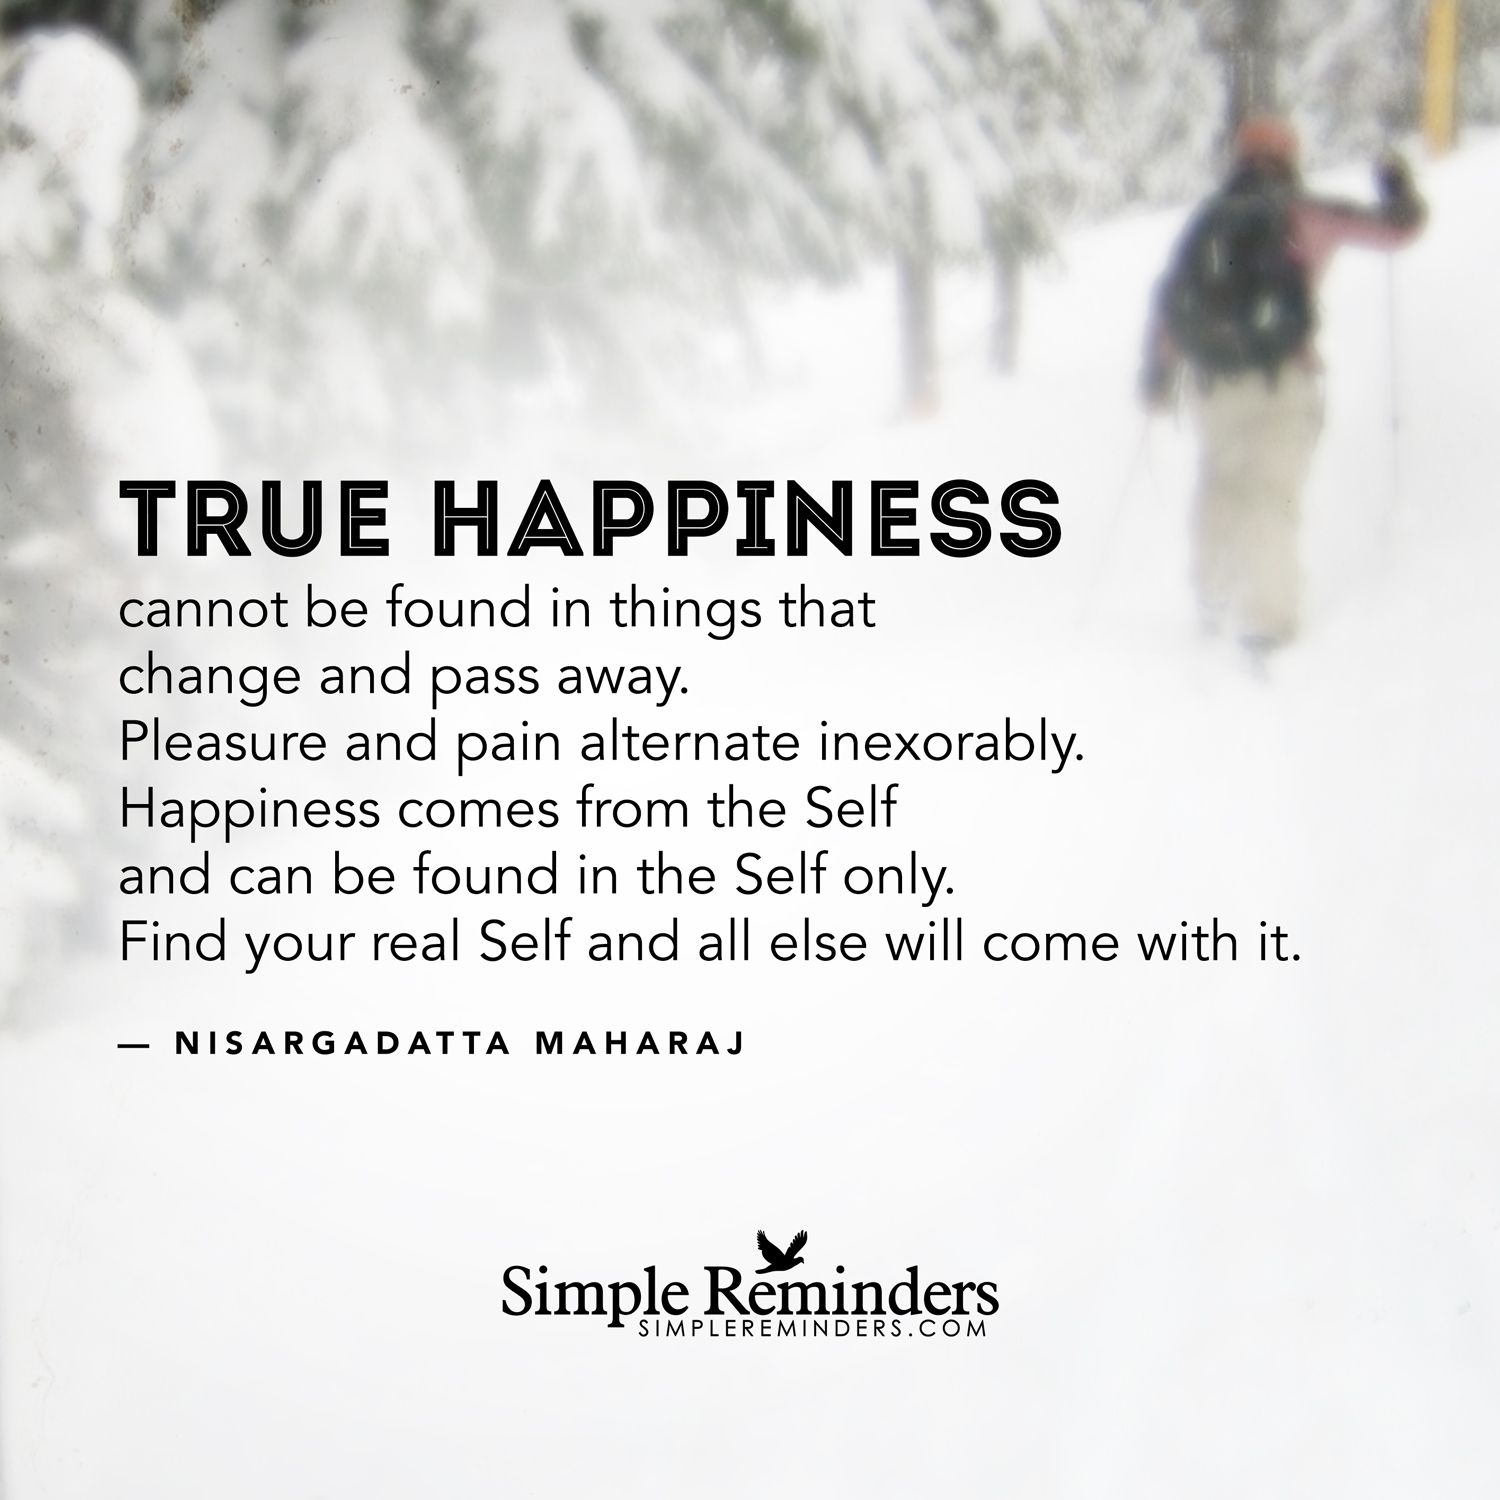 Things that take away happiness